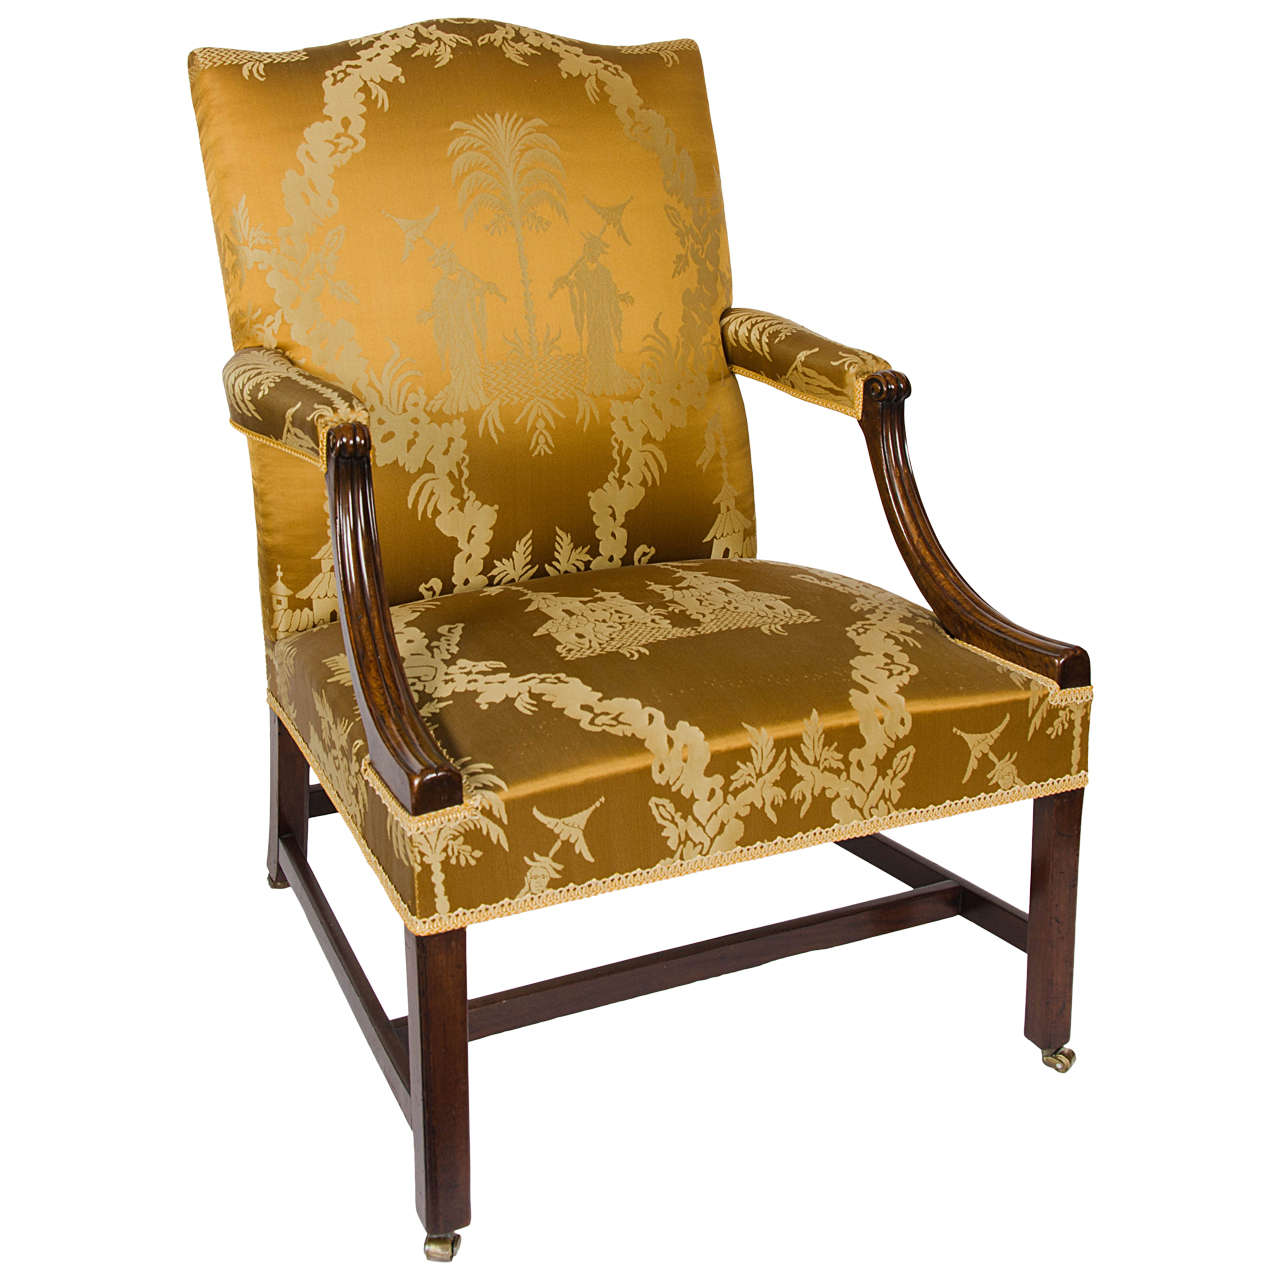 """18th Century Mahogany """"Gainsborough"""" Chair with Chinoiserie Silk on Castors"""